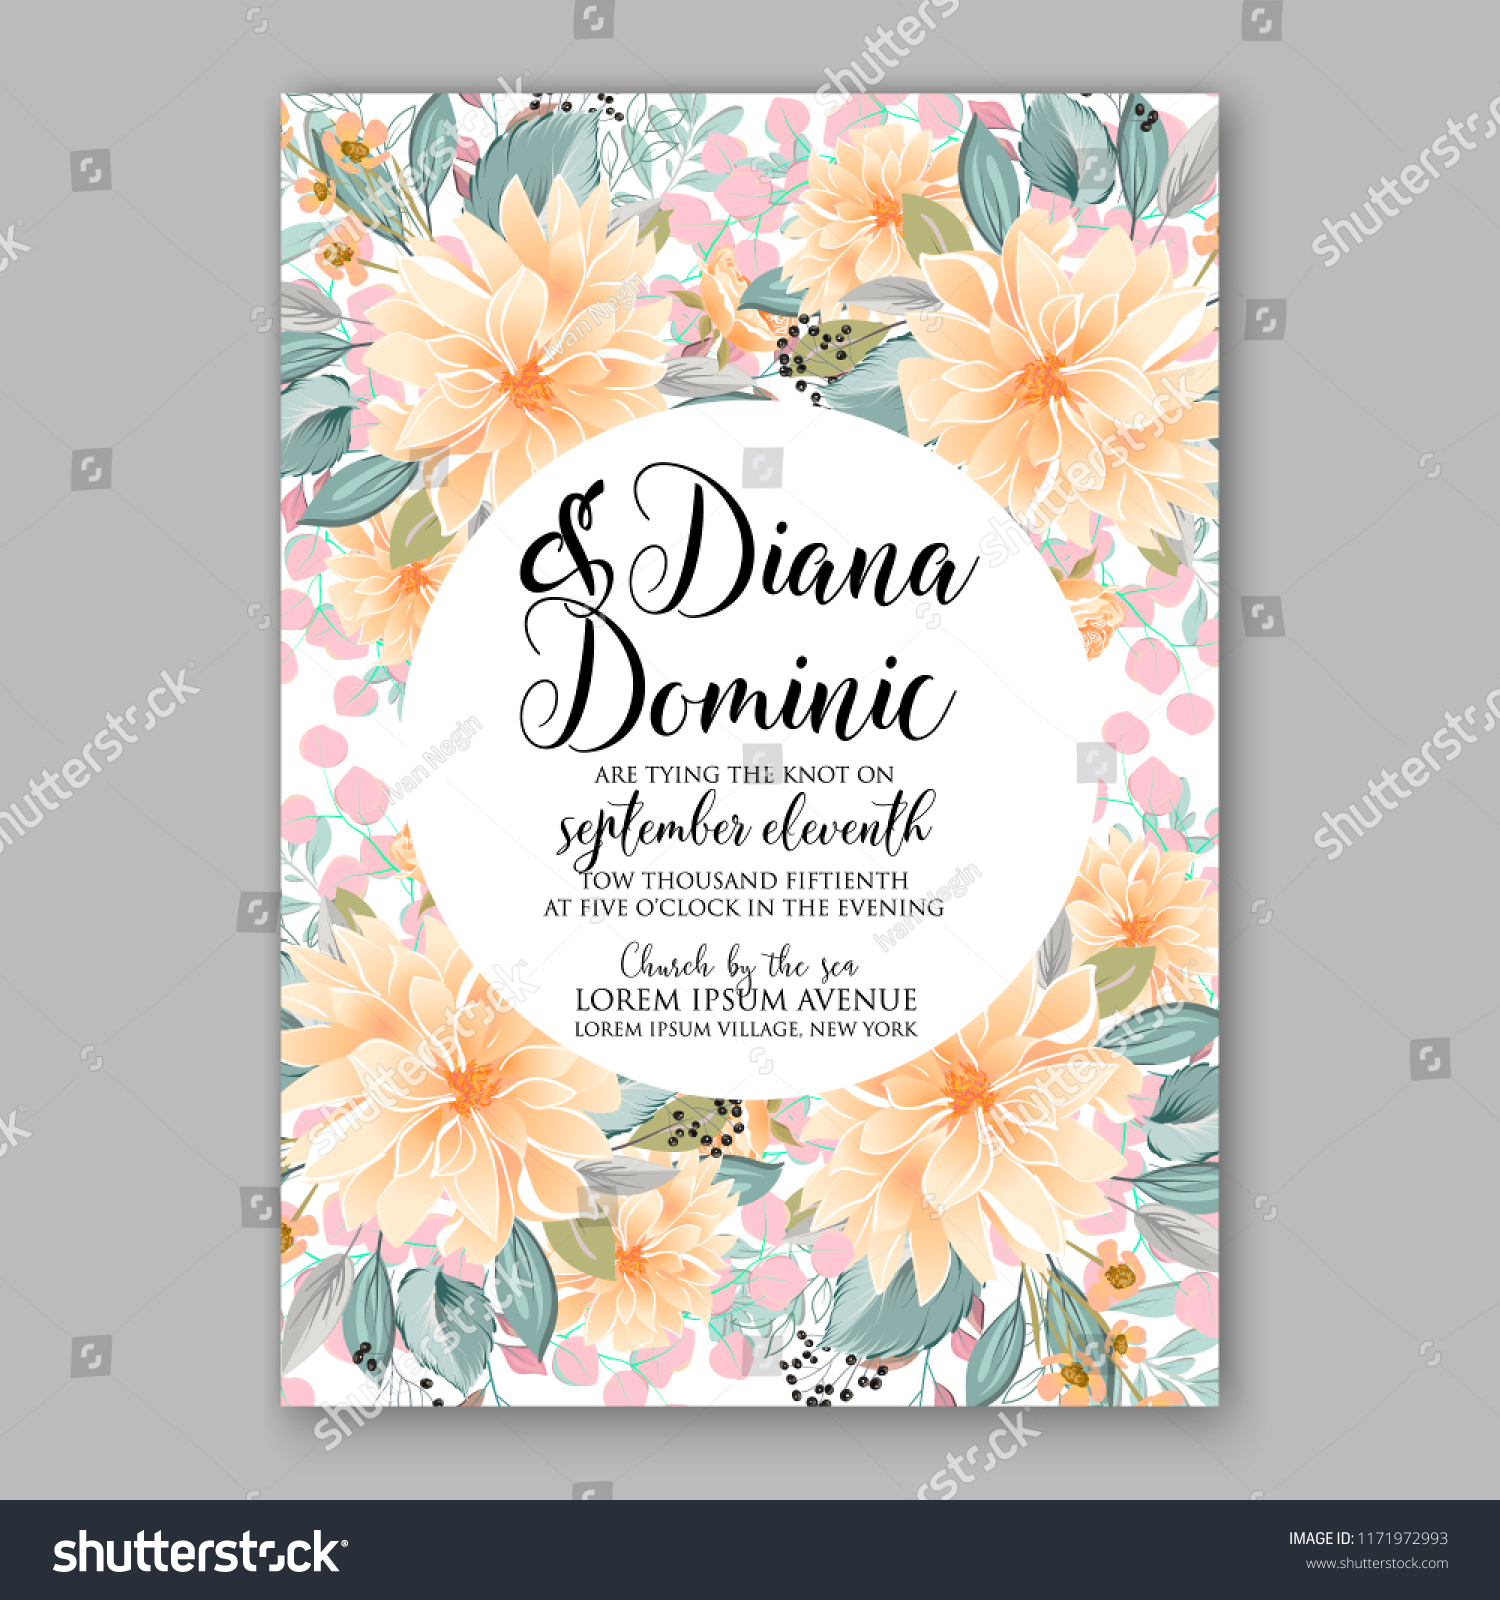 Floral Background Wedding Invitation Baby Shower Stock Image